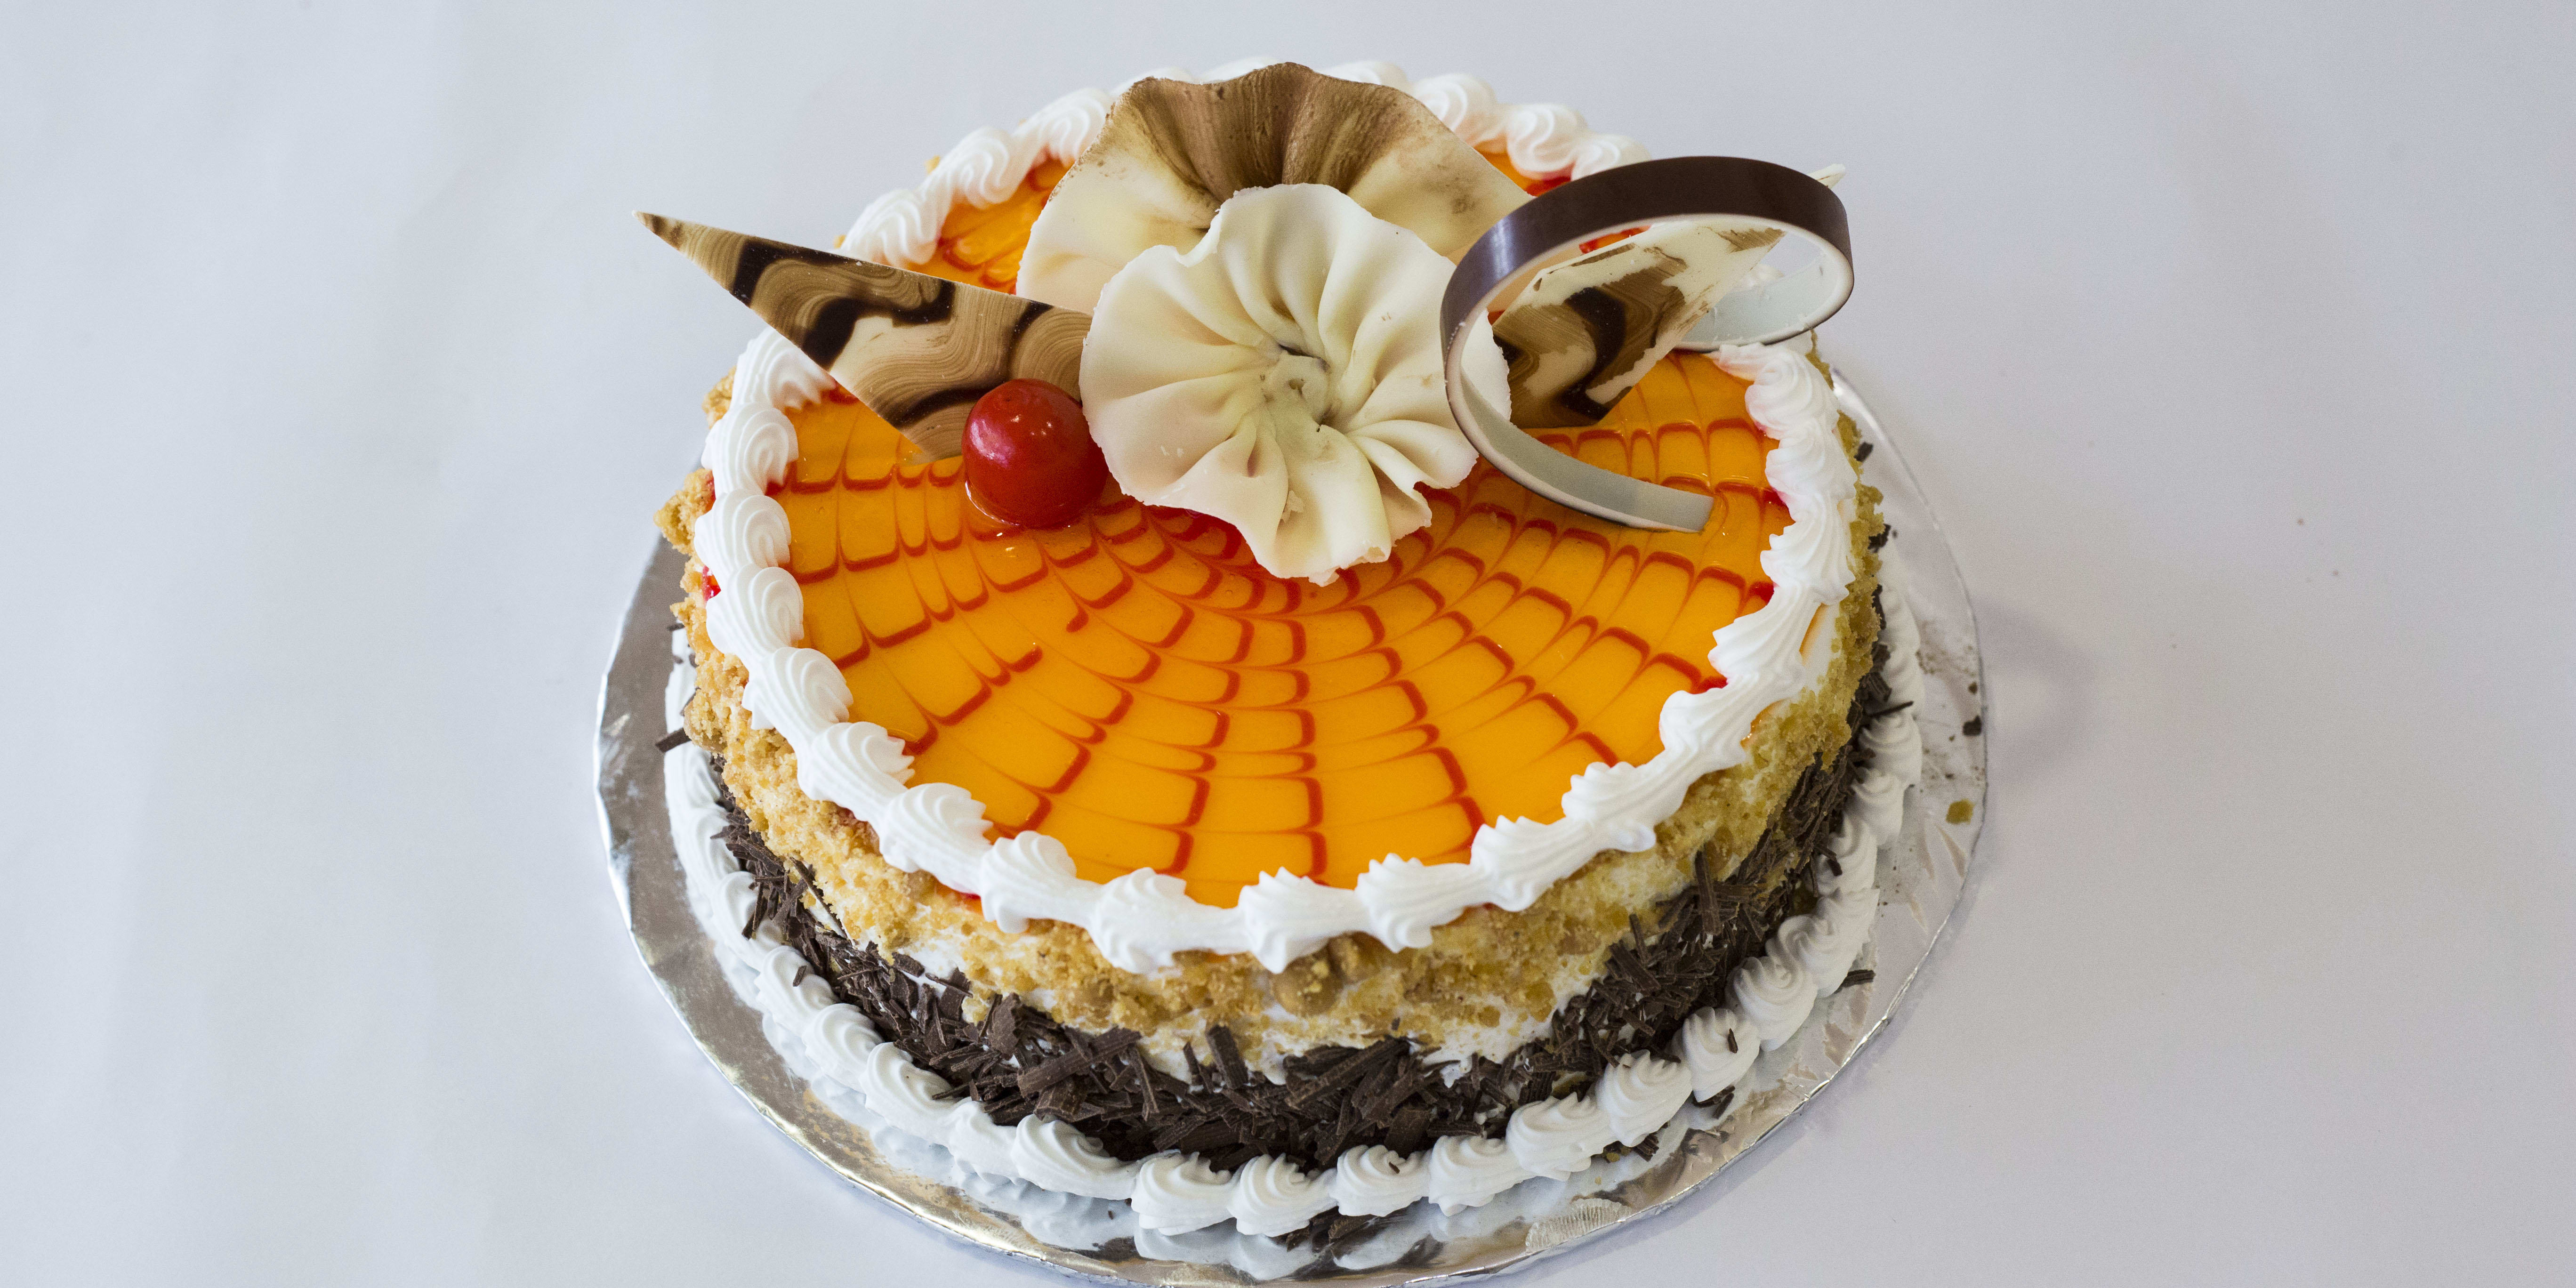 Leela Cakes And More Home Delivery Order Online